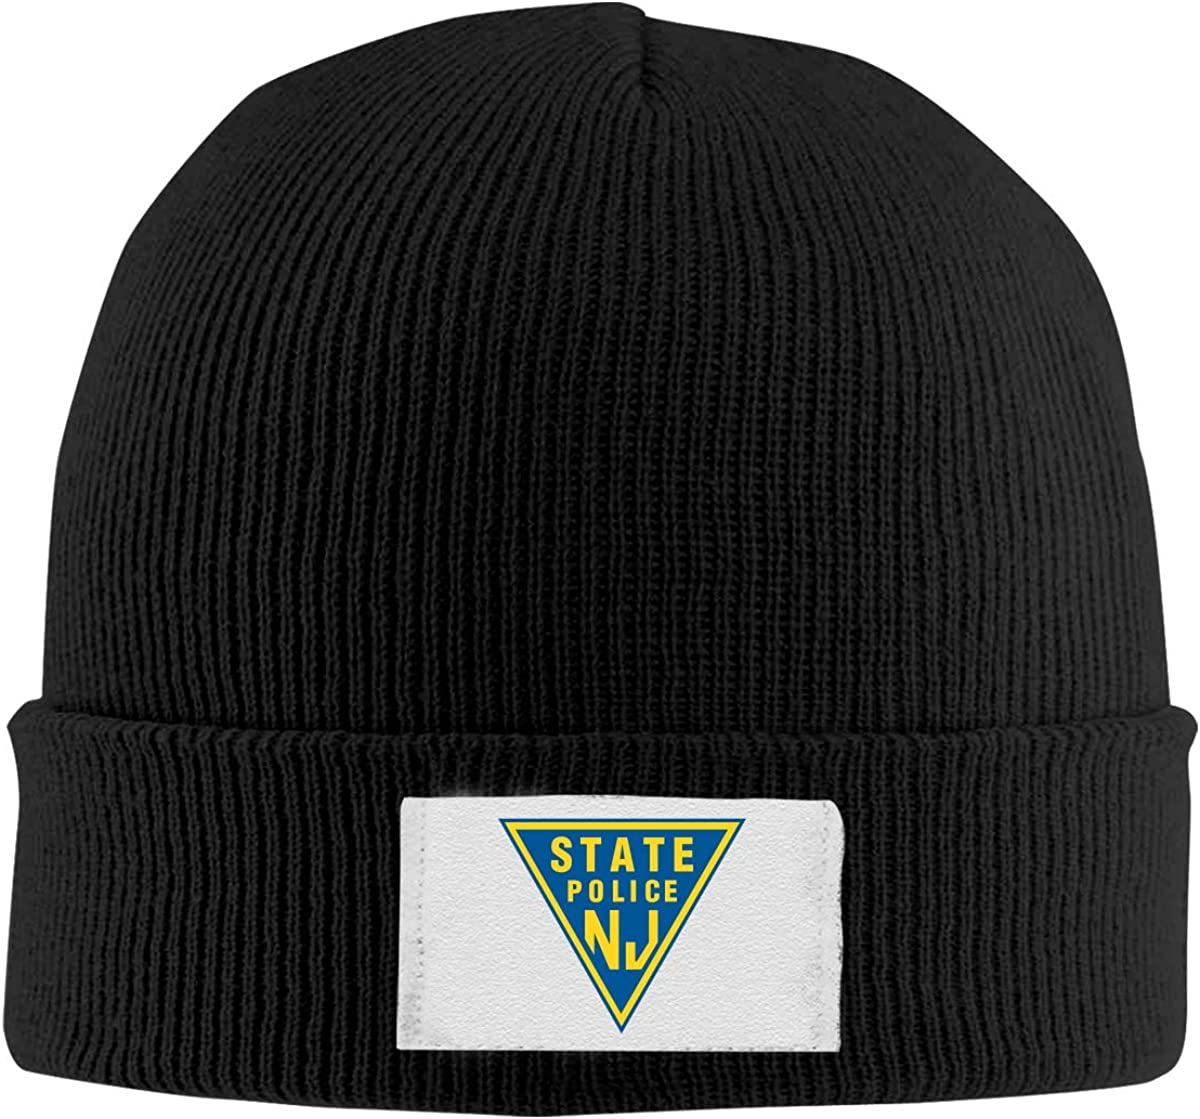 New Jersey State Police Top Level Beanie Men Women Unisex Stylish Slouch Beanie Hats Black